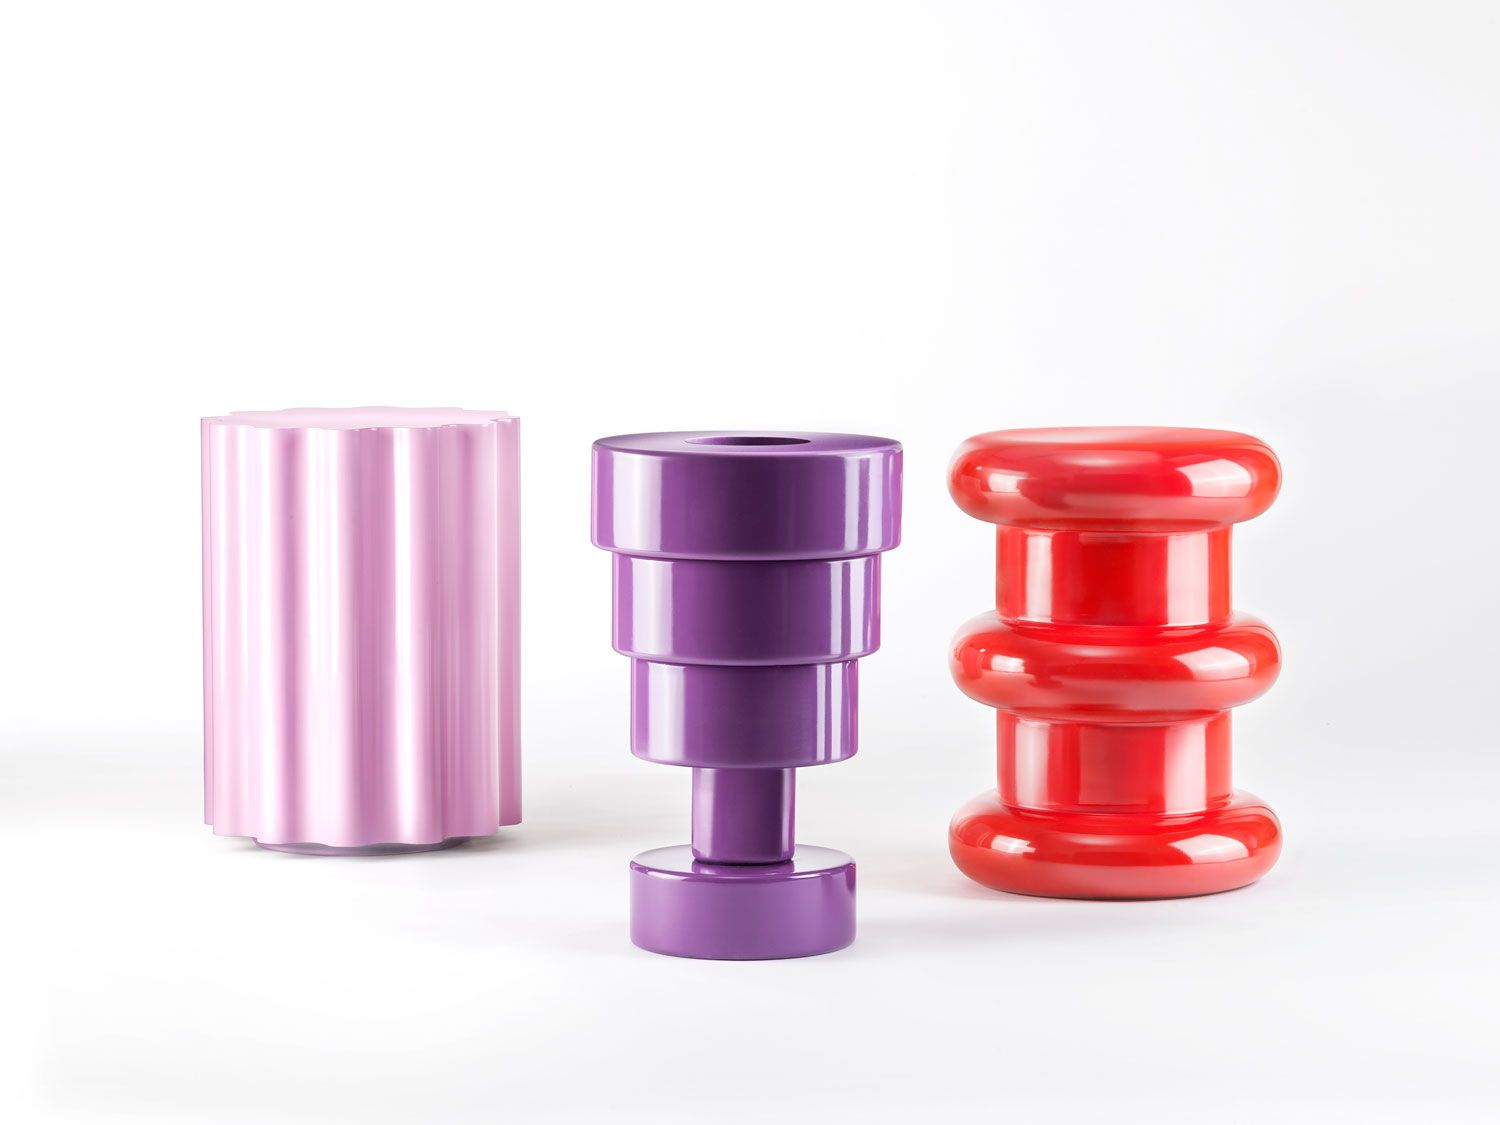 Kartell Memphis Stools & Vase by E Sottsass - Best of Salone Internazionale del Mobile 2015 | Yellowtrace